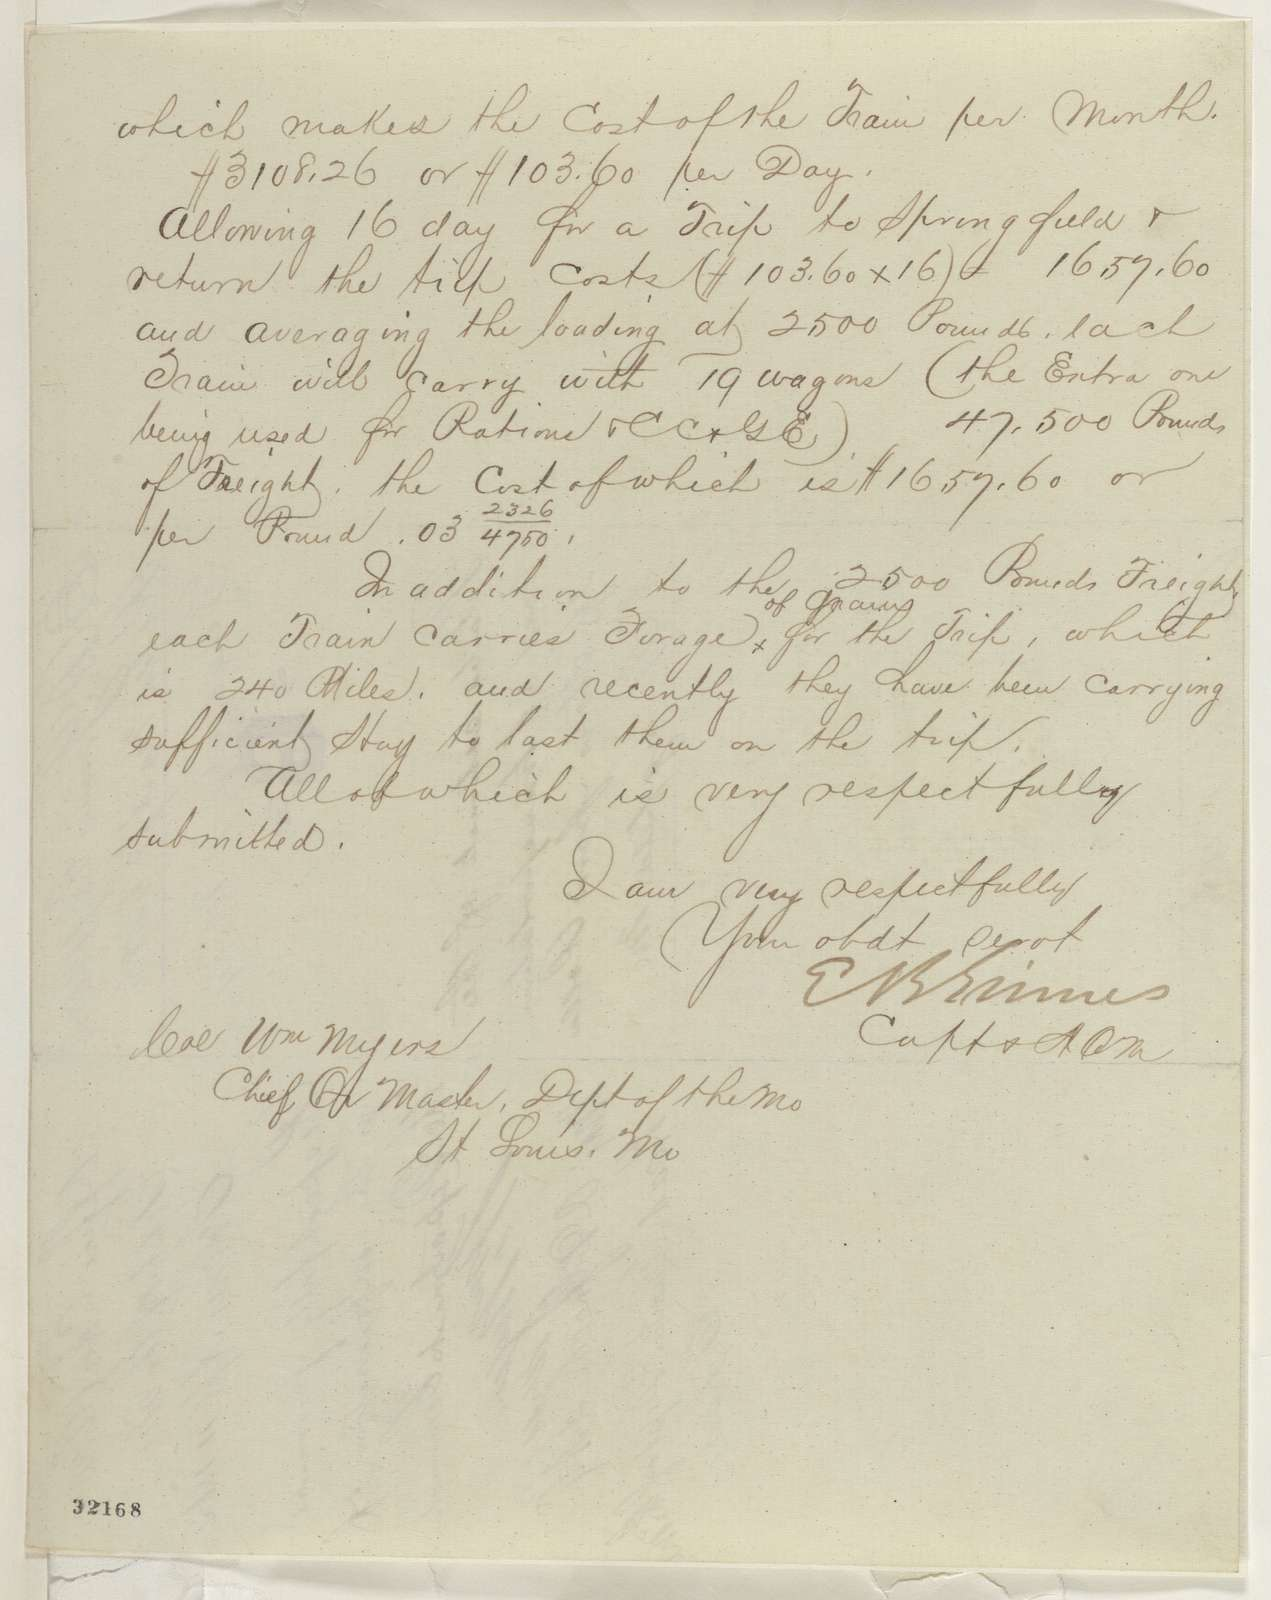 Abraham Lincoln papers: Series 1. General Correspondence. 1833-1916: Edward B. Grimes to William Myers, Wednesday, April 06, 1864 (Military affairs in Missouri; endorsed by Myers)